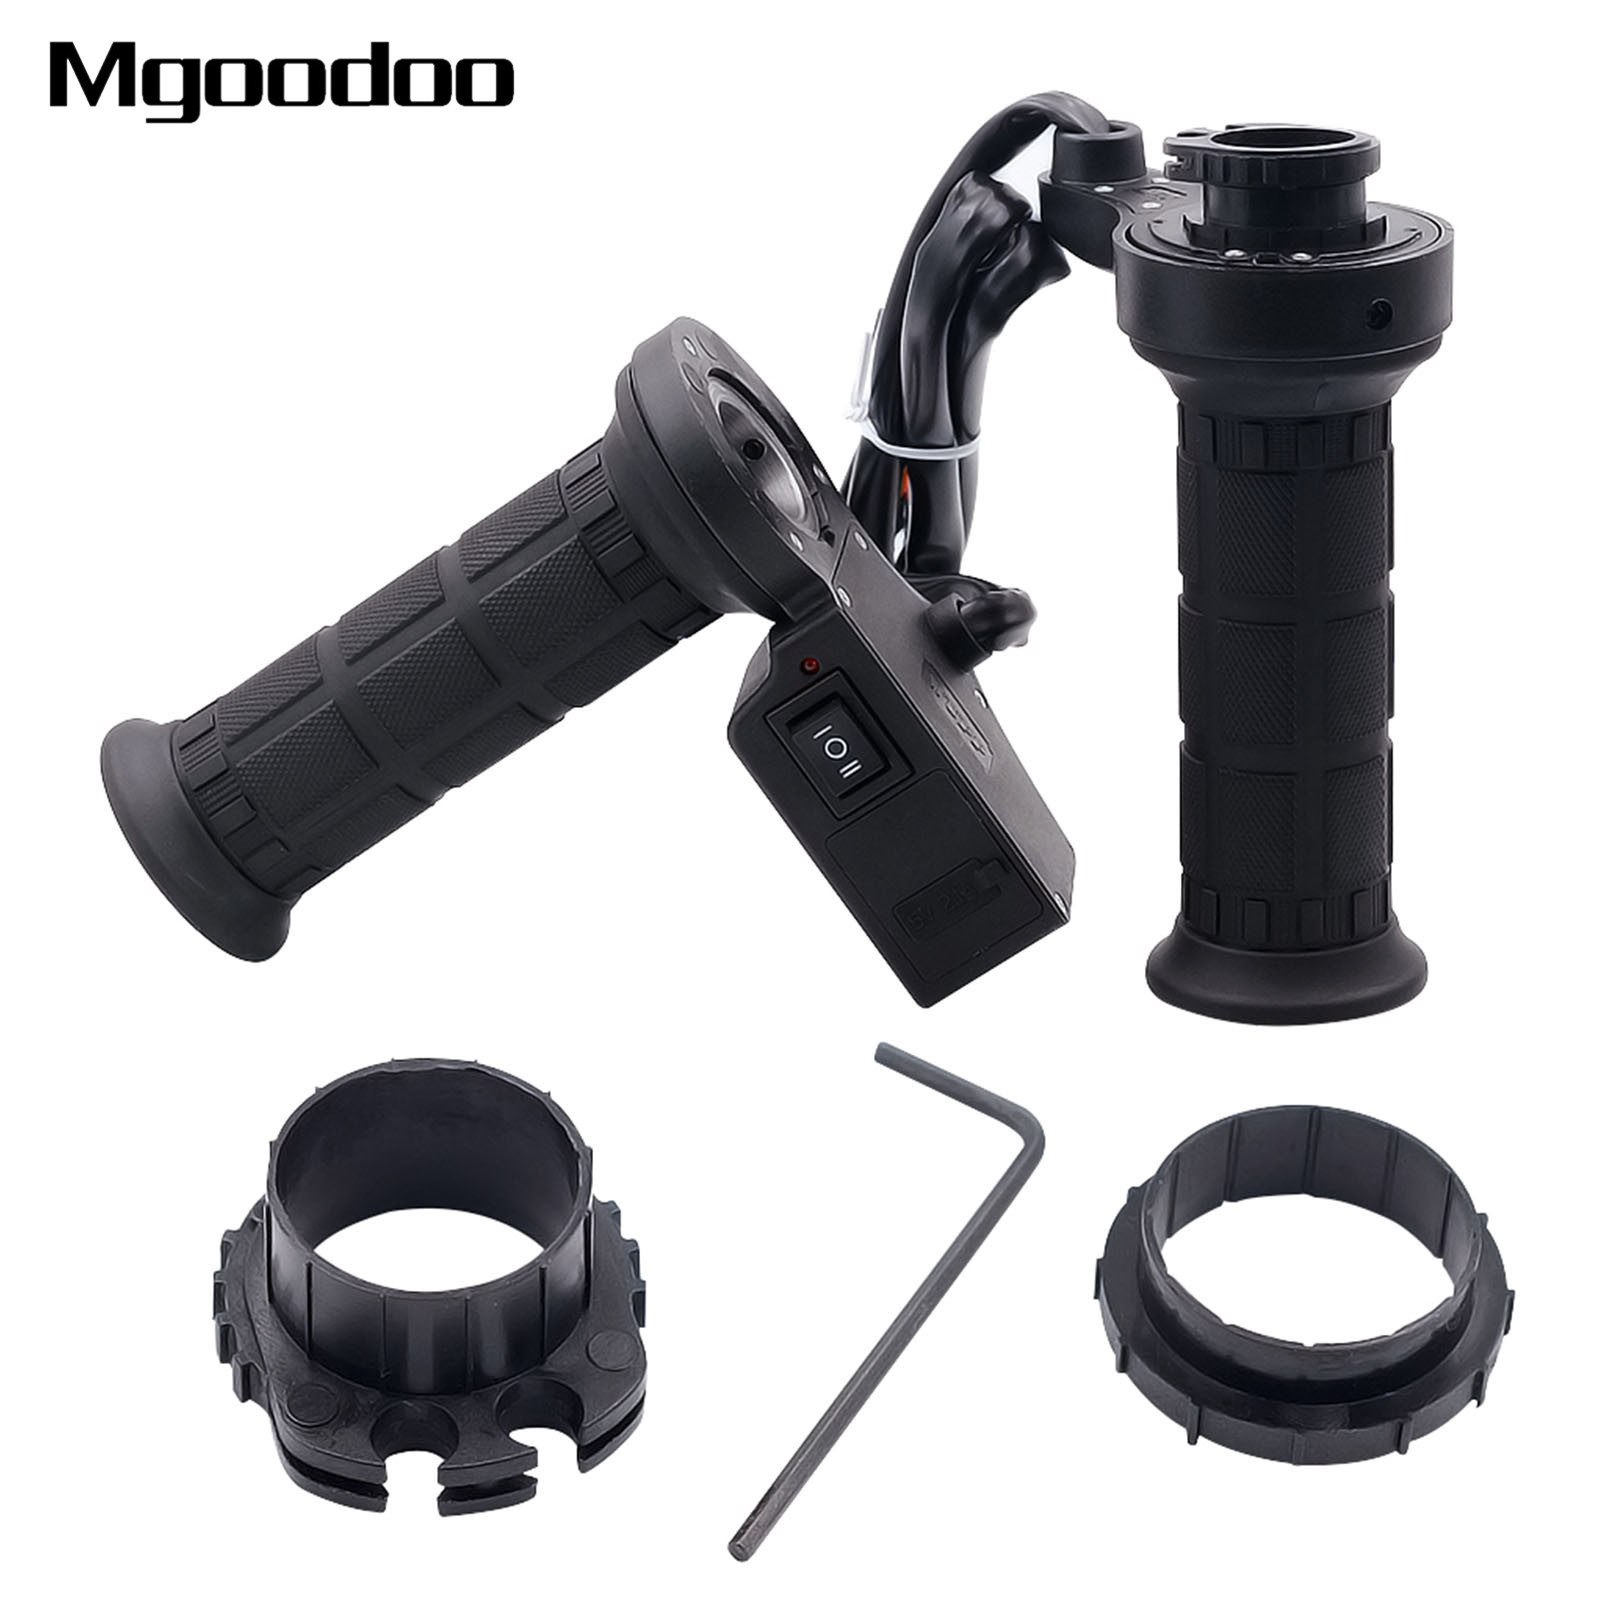 New 3 In 1 Motorcycle Handlebar Electric Hot Heated Grips Handle Handlebar Warmer Voltage USB Charger For ATV Motor Motocicleta